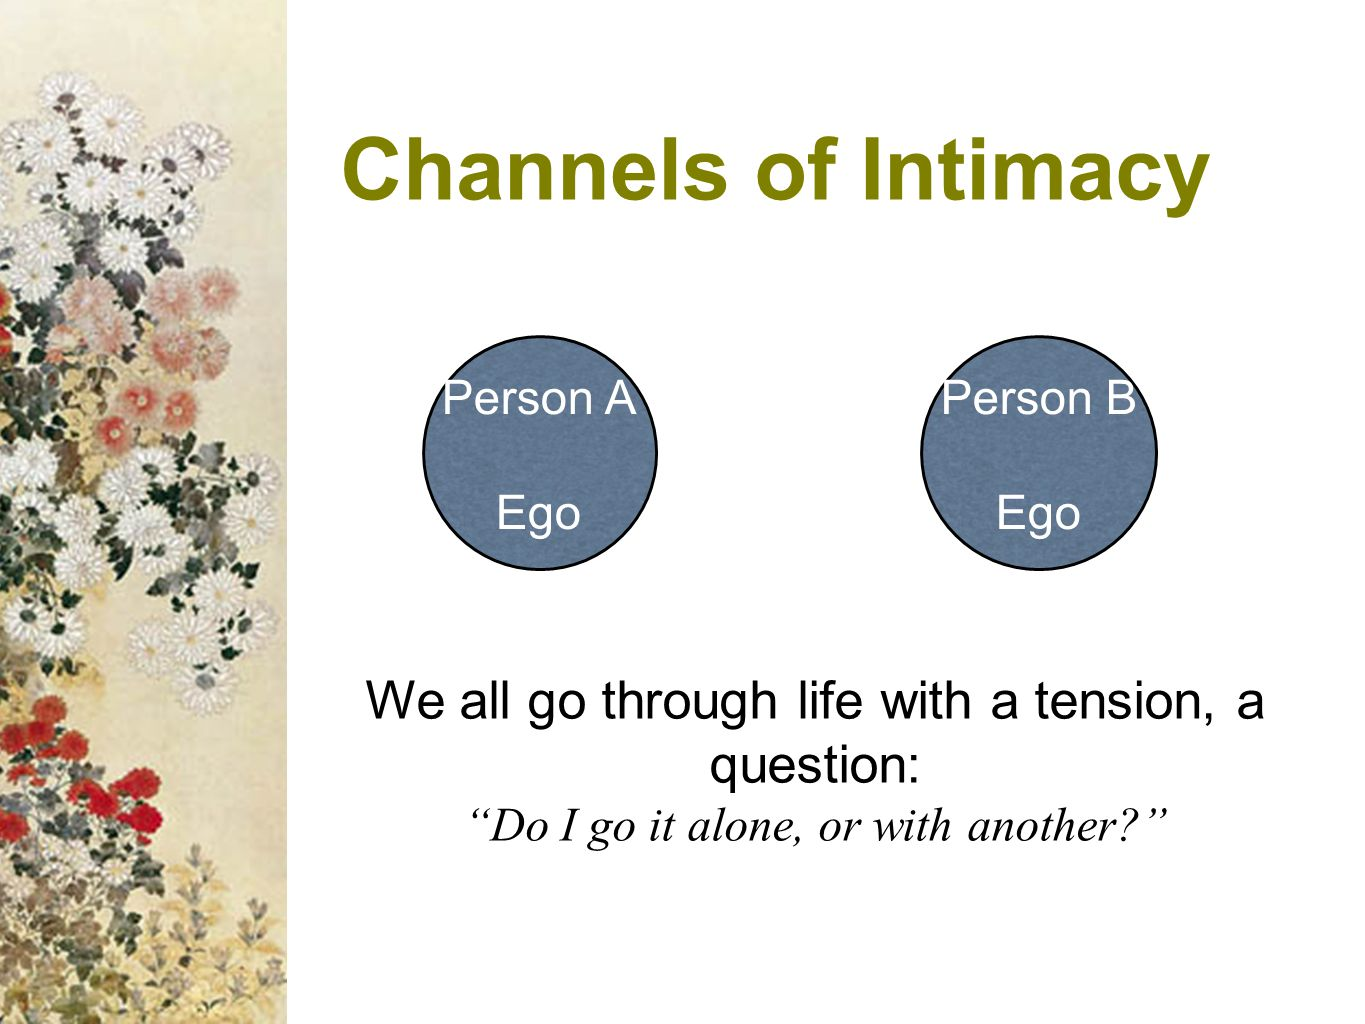 Channels of Intimacy Person A. Ego. Person B. Ego. We all go through life with a tension, a question: